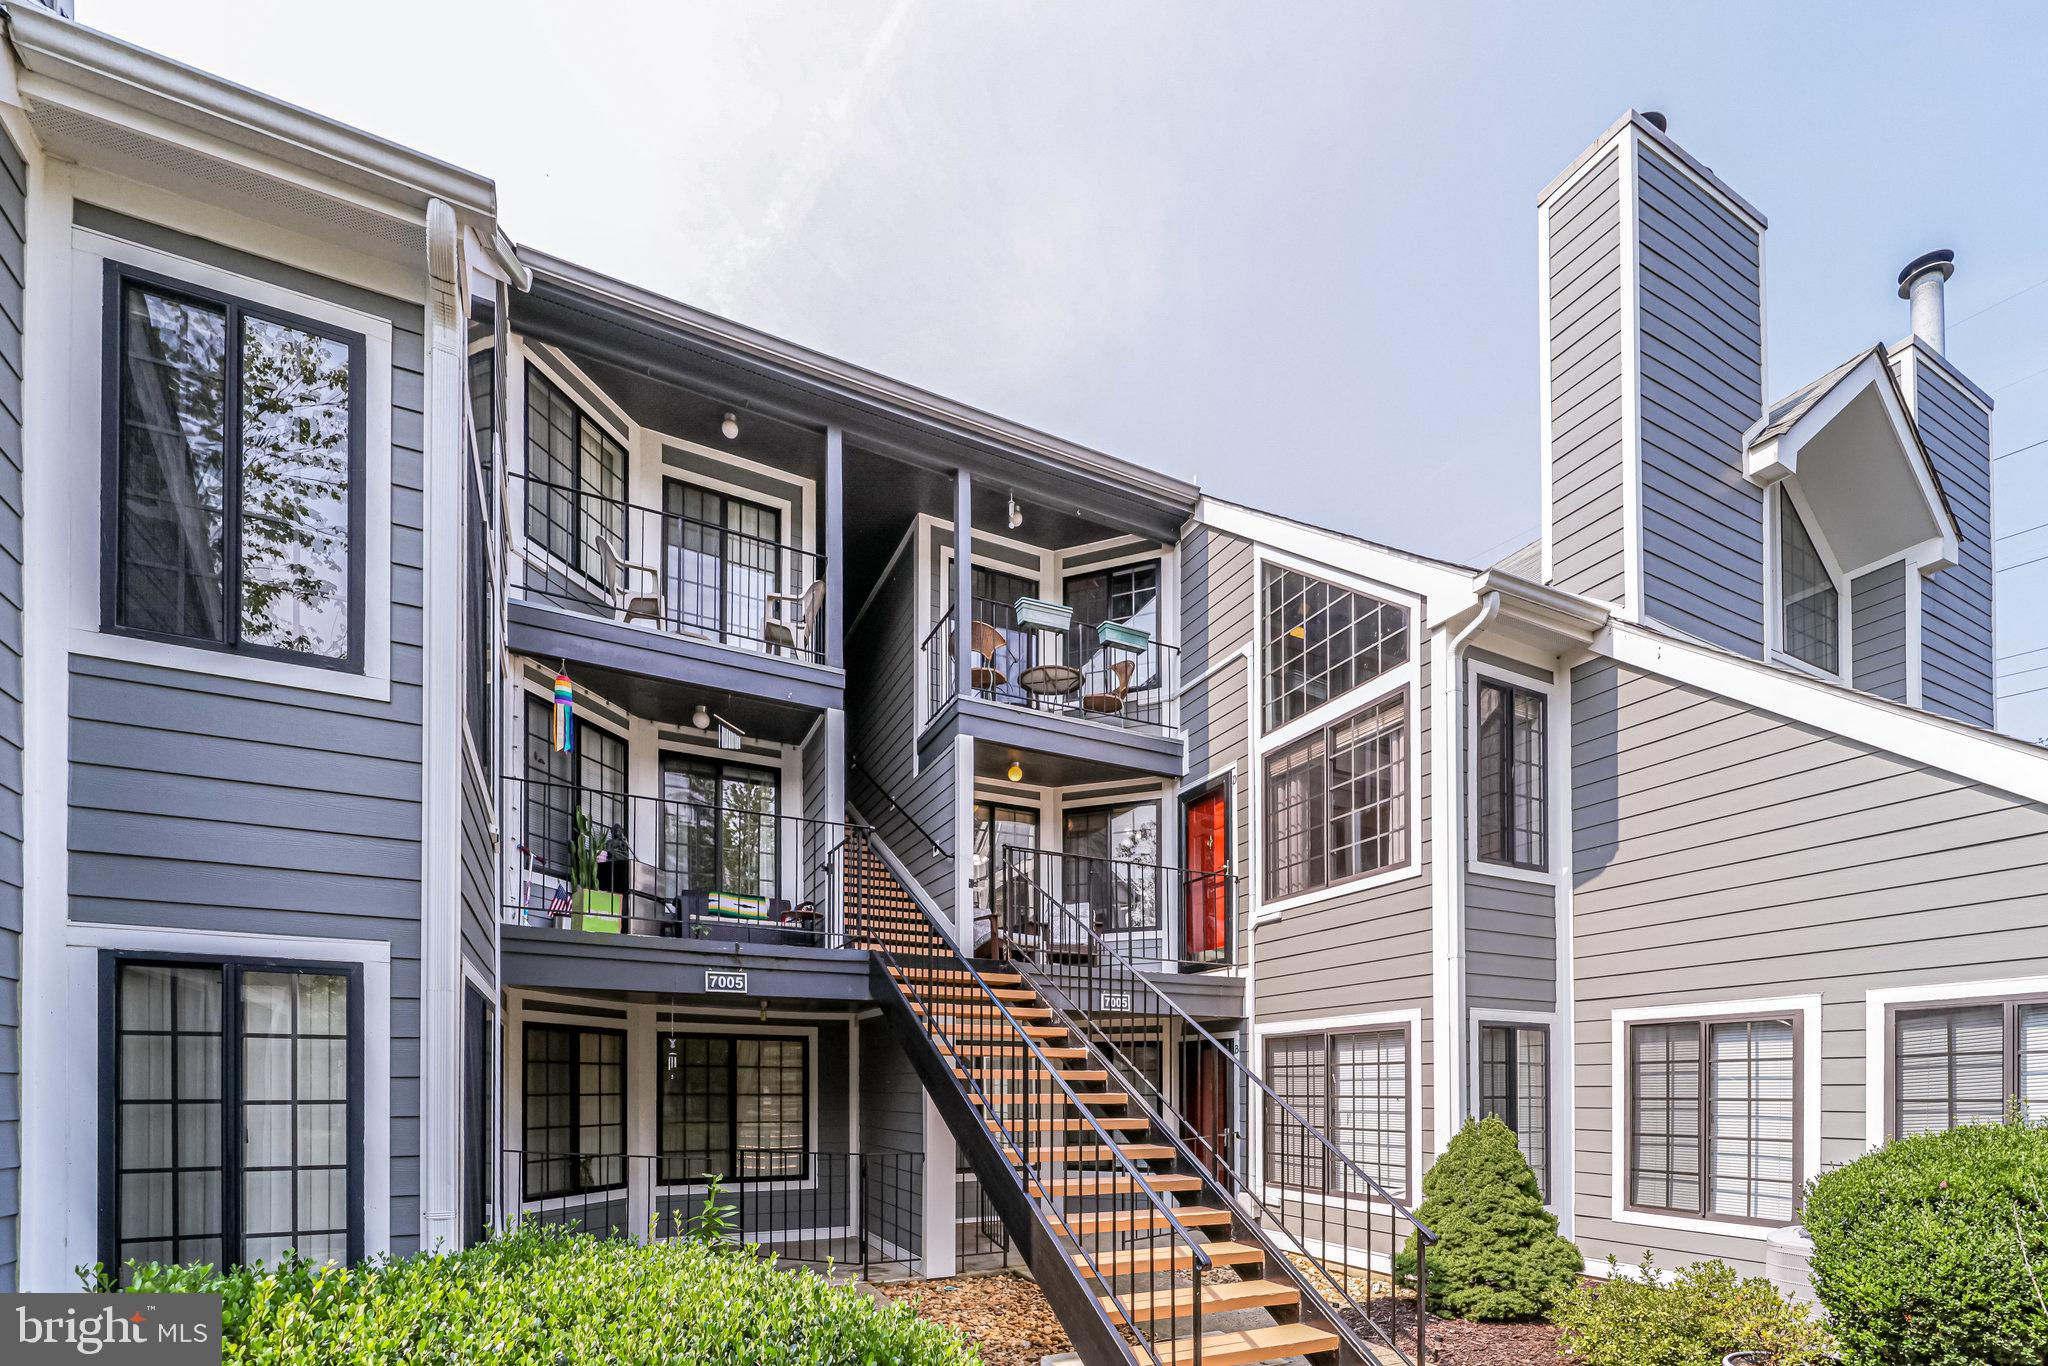 OPEN SUN 1-3. Awesome 2 BR 2 Bath plus loft in Tiers II at Manchester Lakes.  Nearly 1300 SF.  Spacious, open floorplan with tons of natural light. Fireplace in living room. Kitchen upgraded with stainless and granite. Primary BR has walk-in closet and a brand new bath with oversized shower.  Loft is a great home office, flex space, or guest area. 1 car garage plus driveway. Community has pool, clubhouse, tennis, playground. Close to shopping, restaurants. Springfield Metro nearby. Move-in ready.